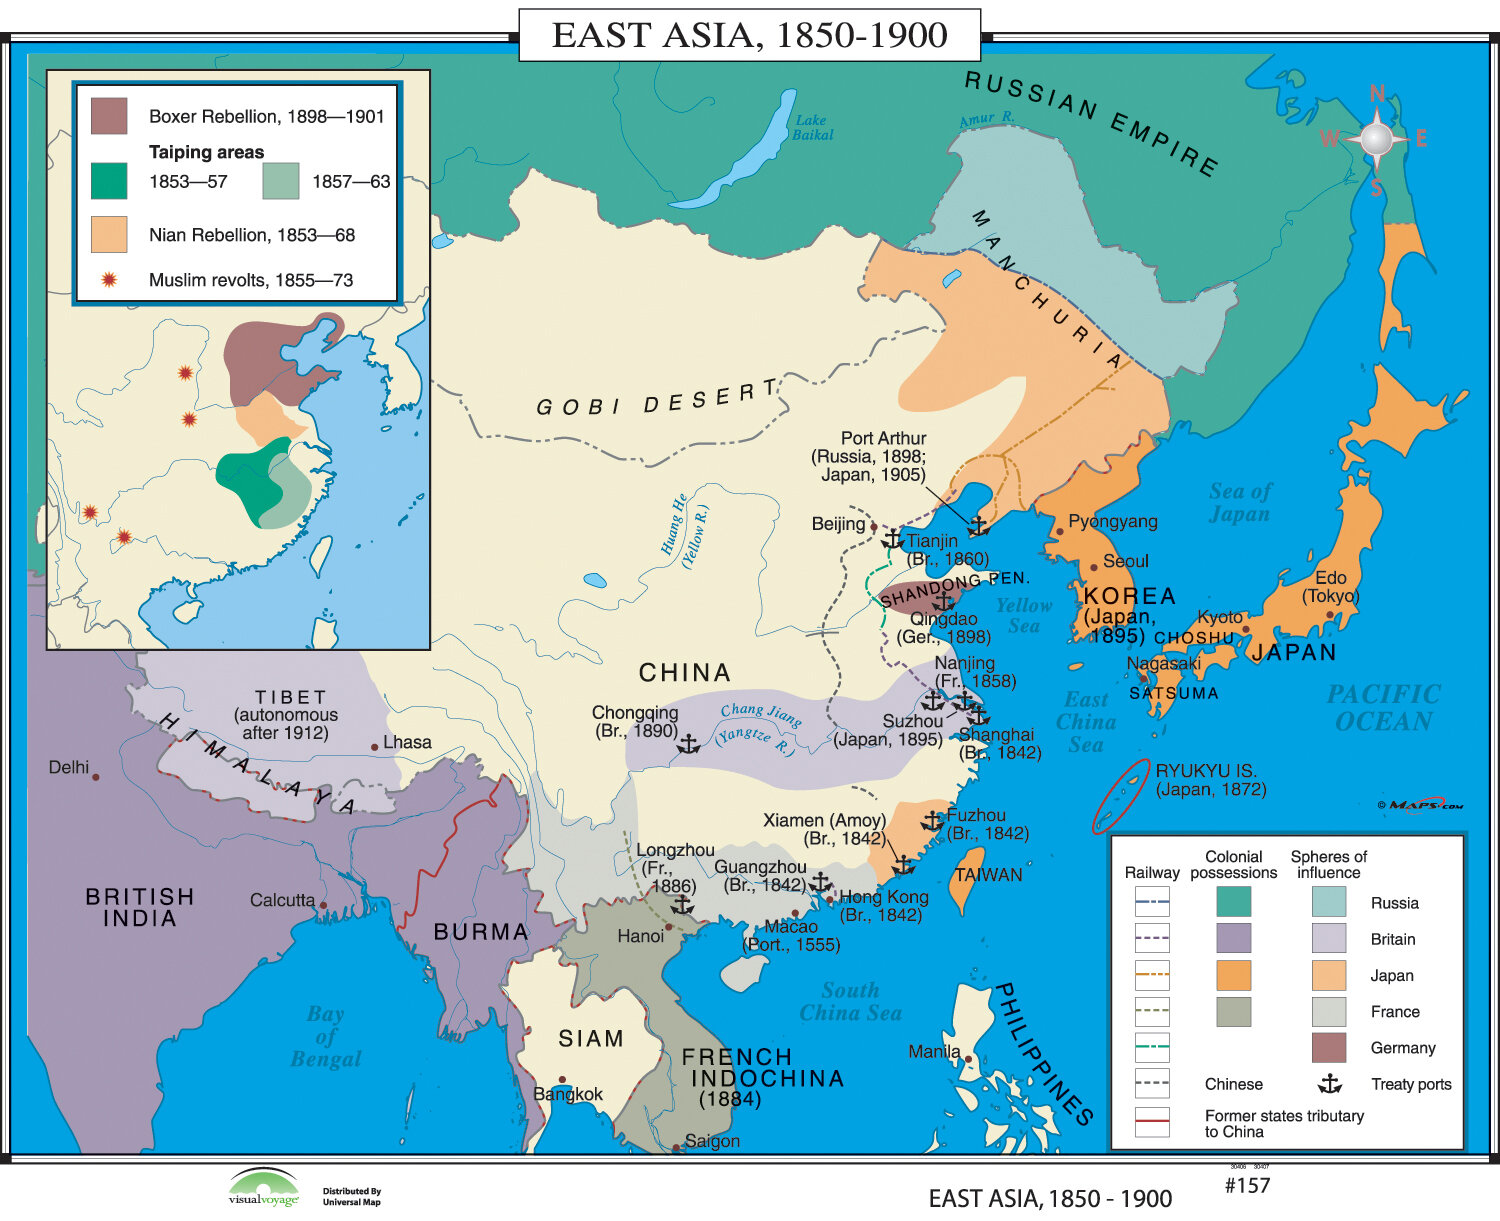 World History Wall Maps - East Asia 1850-1900